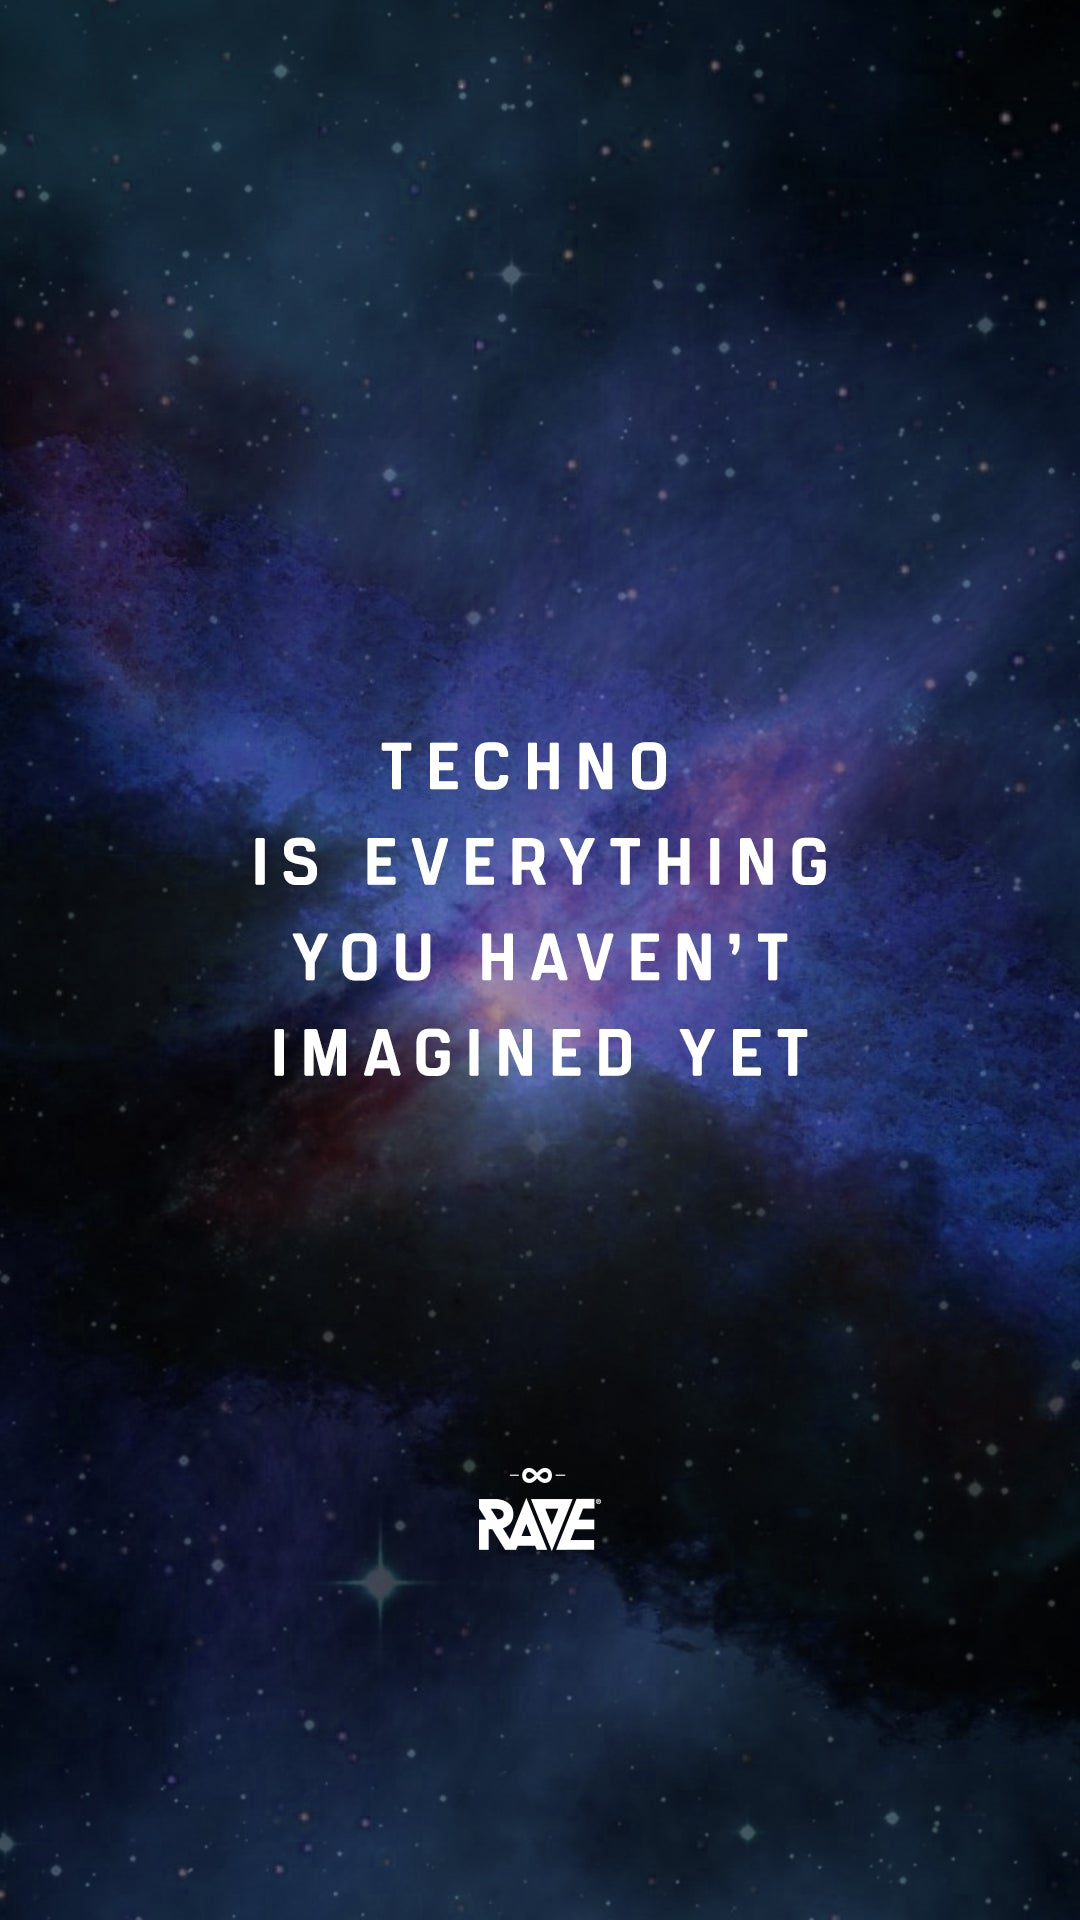 Techno is everything you haven't imagined yet